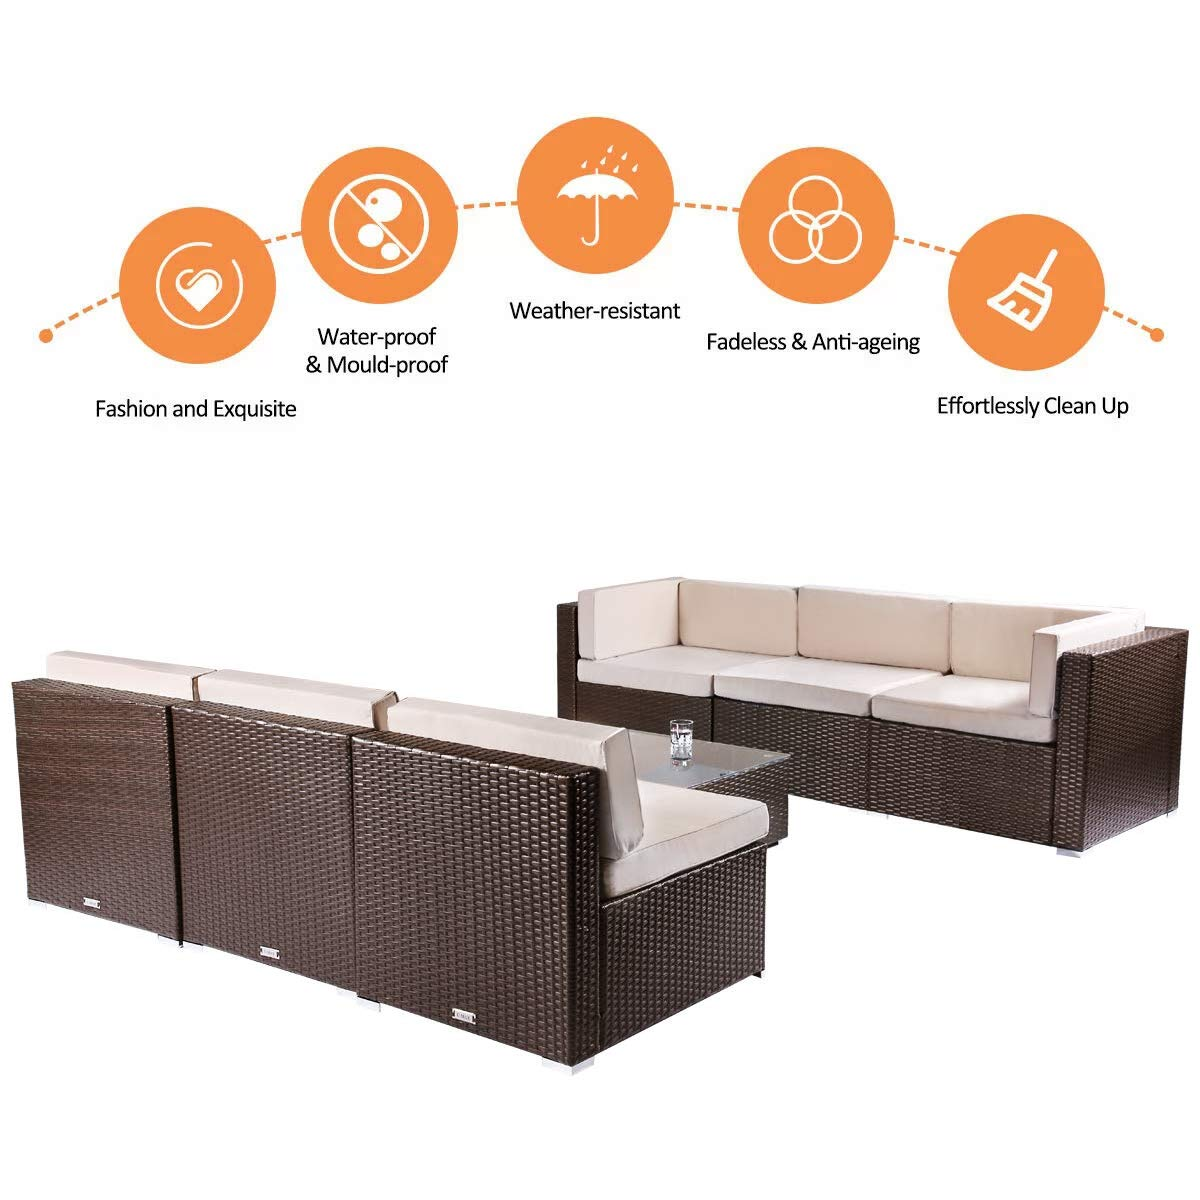 BaoChen 7 Piece Outdoor Patio Furniture Sets PE Rattan Conversation Sofa Set Sectional Wicker Chair with Cushions and Tea Table Brown